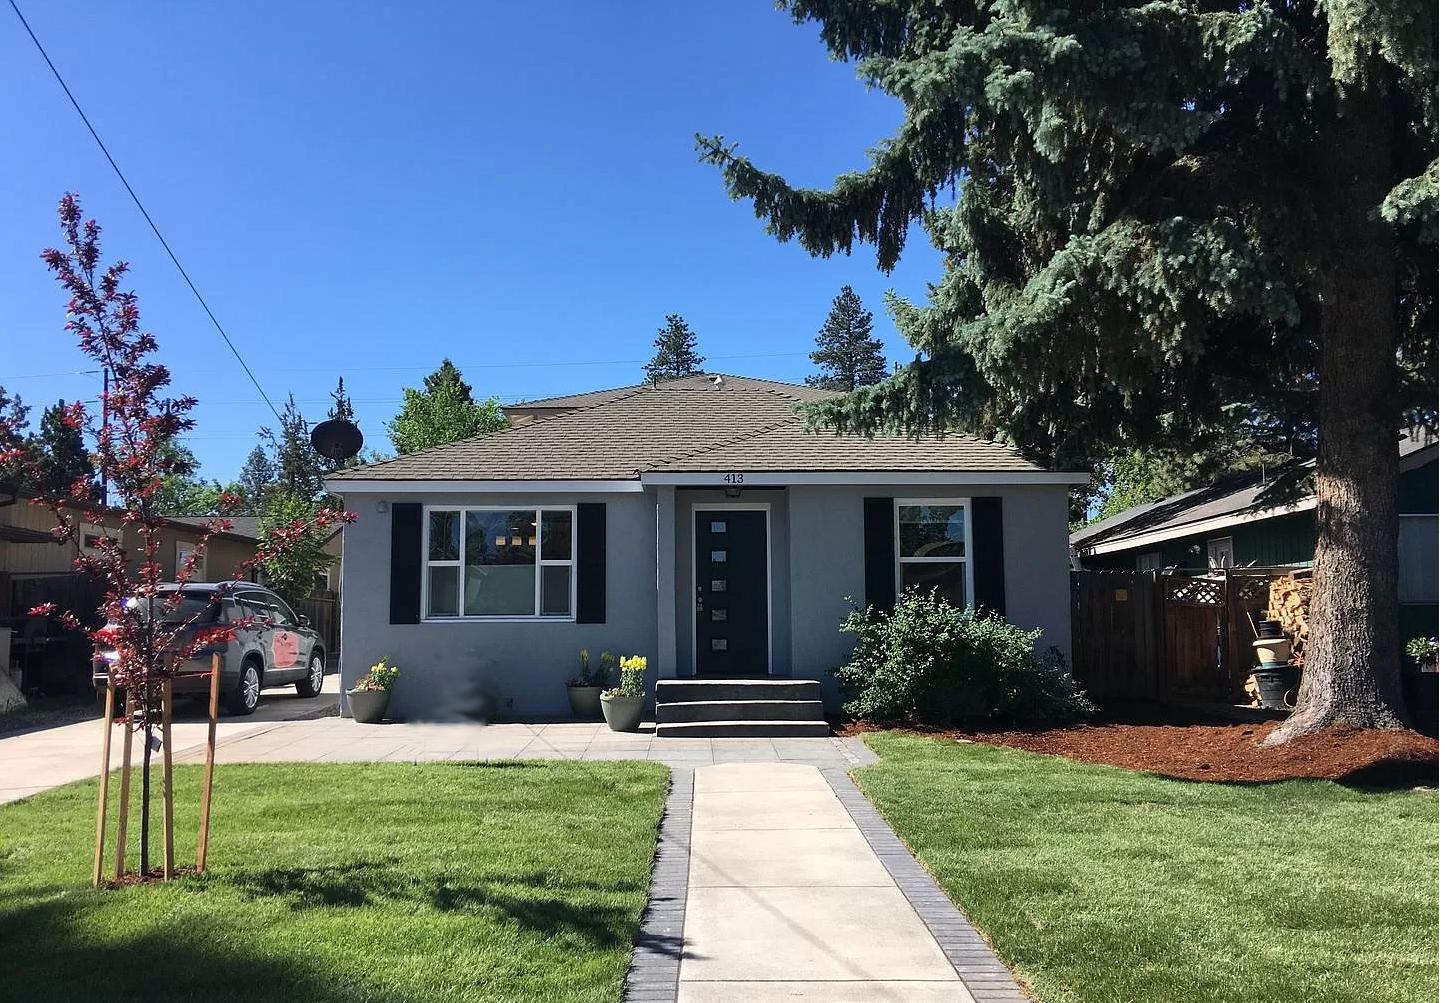 Special multifamily opportunity in the heart of Bend. Completely updated 1950's Cottage, which will surprise even the most distinguished investor. GREEN updates throughout, lovely shared patio for Central Oregon outdoor living. Second unit over detached garage, built in 2002, has Cascade Mountain views and private balcony. Each unit has garage, laundry and storage area. Property is professionally managed with tenants in place.  Cottage $1,495/month, ADU $1,395/month. Oregon Landlord/Tenant Laws Apply.